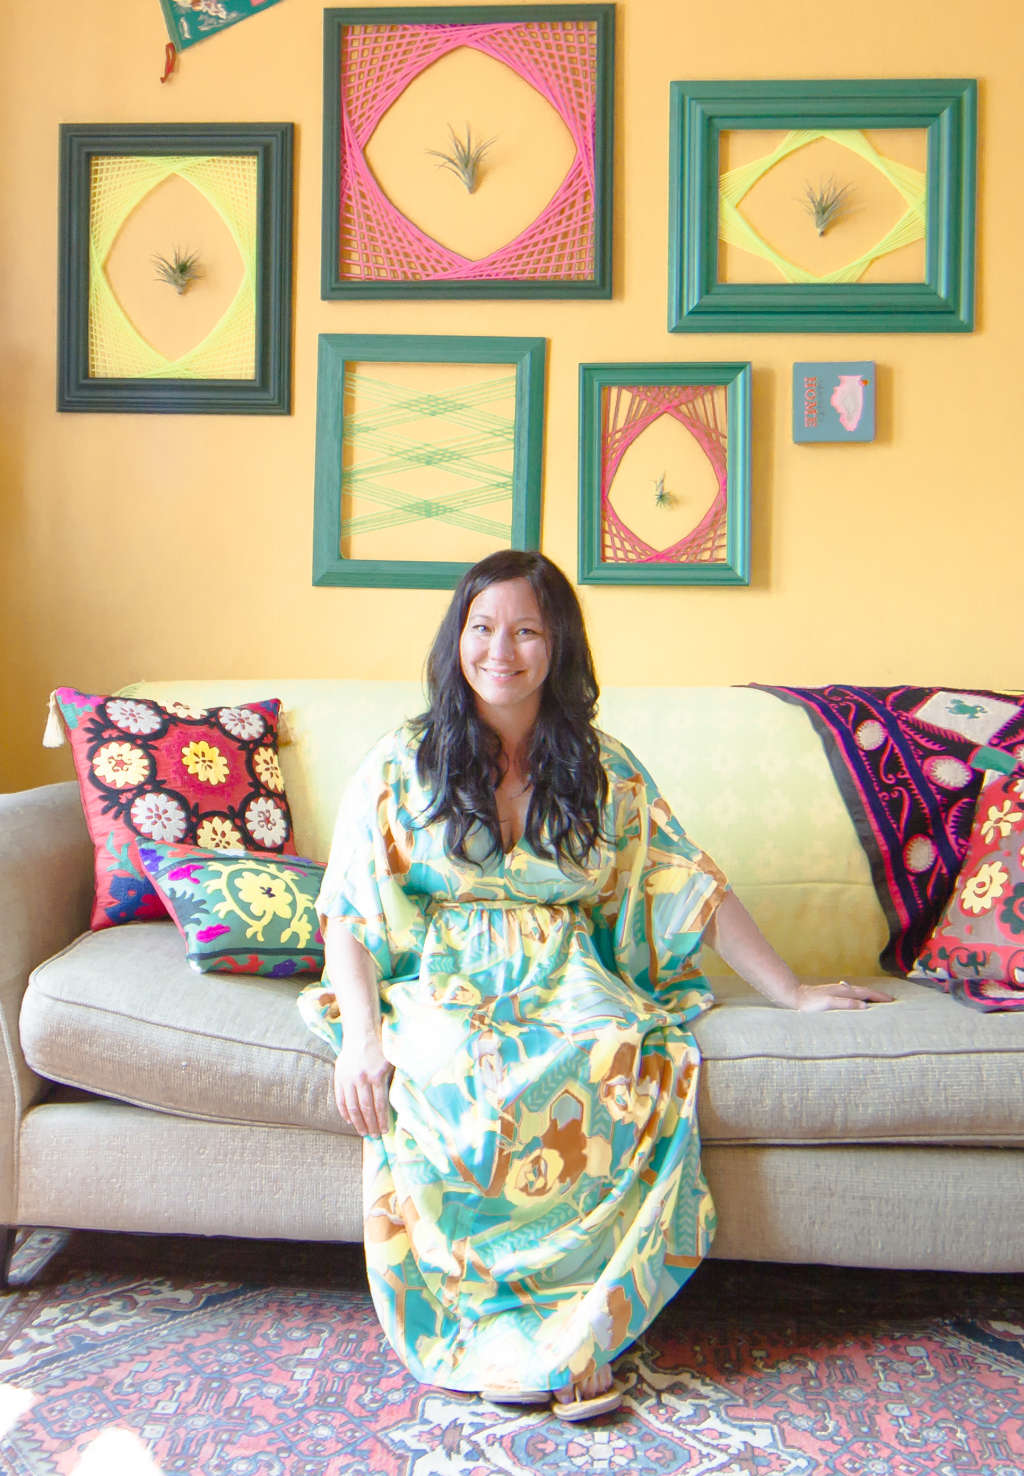 House Tour: A Chicago Home Bursting With Bold Colors